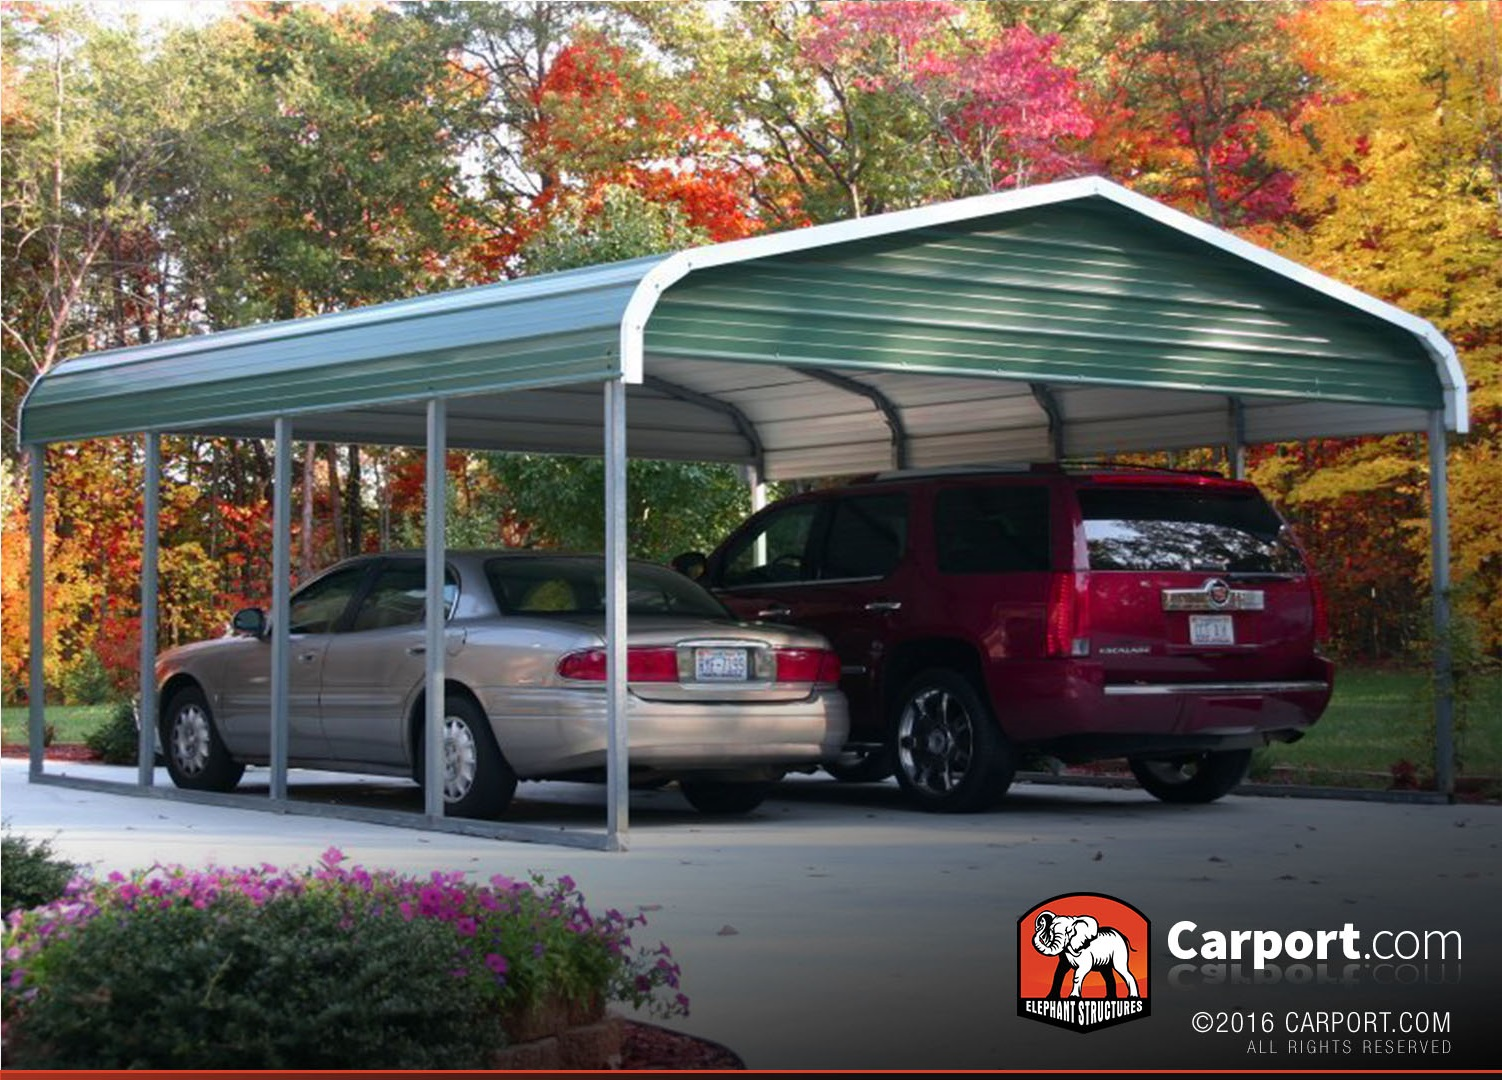 Single Car Carport 12 39 X 26 39 With Regular Roof Single: 1 car carport